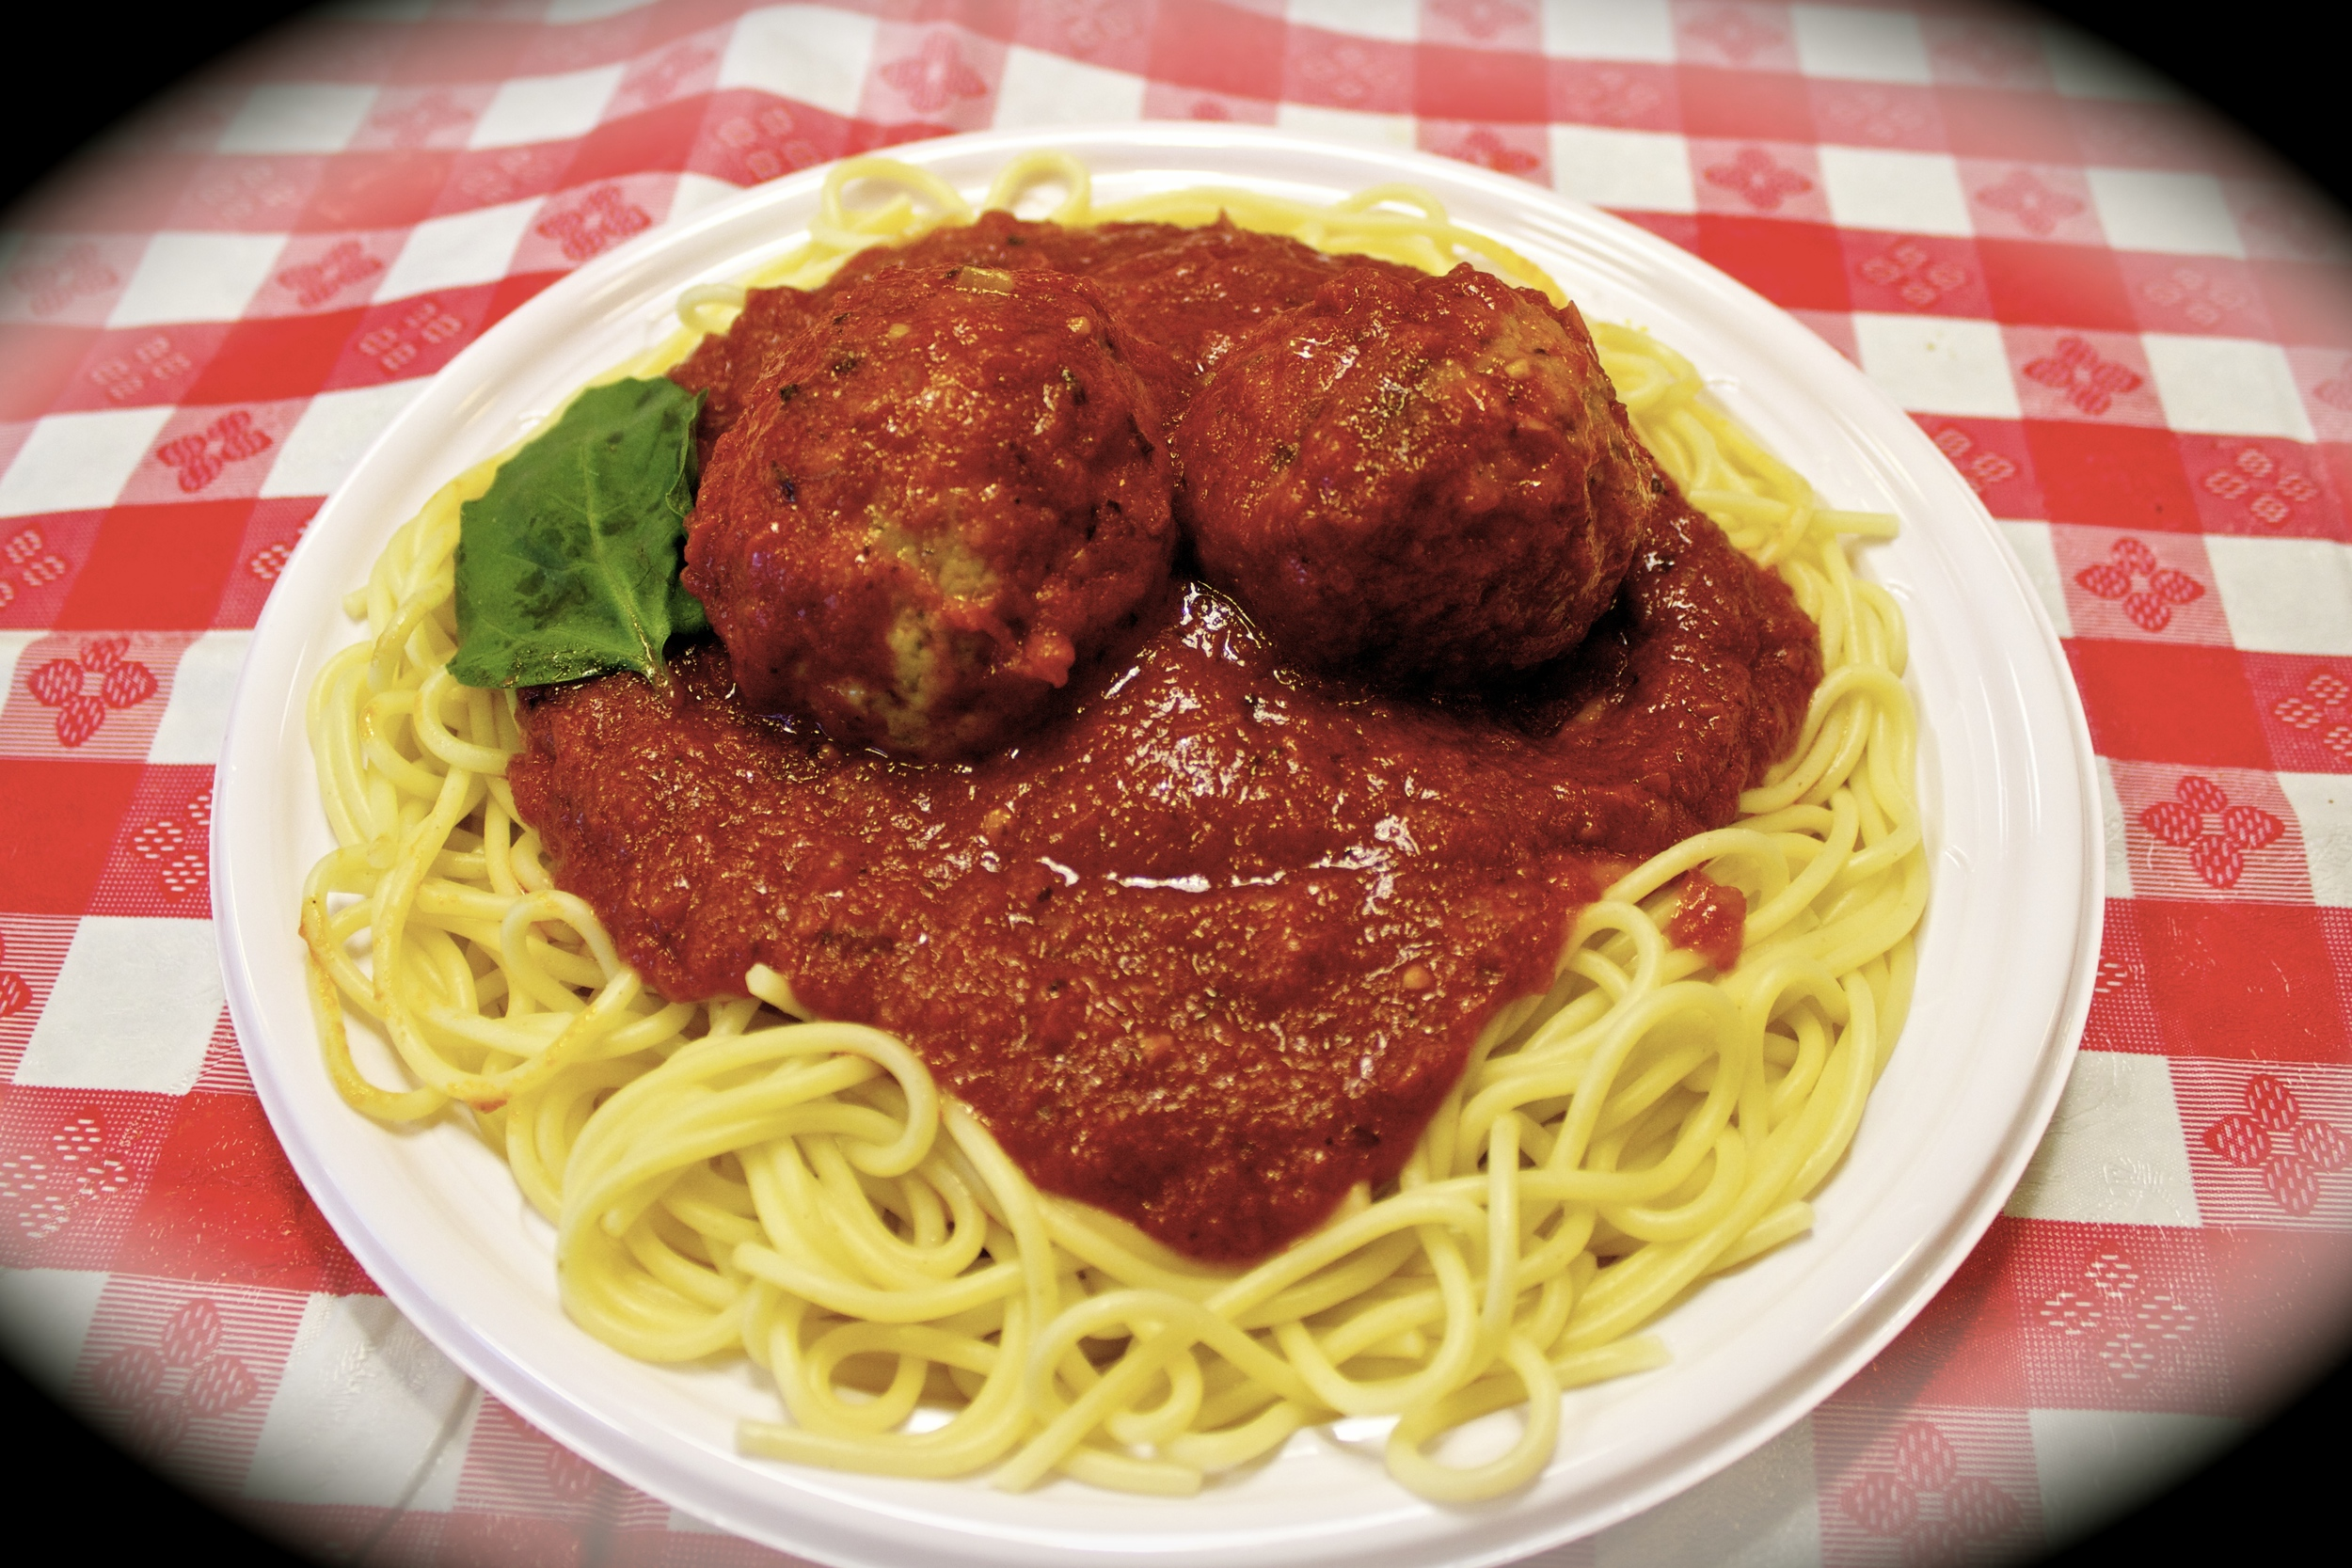 Spaghetti dinner: $6.75. With 2 homemade meatballs: $2.25 extra